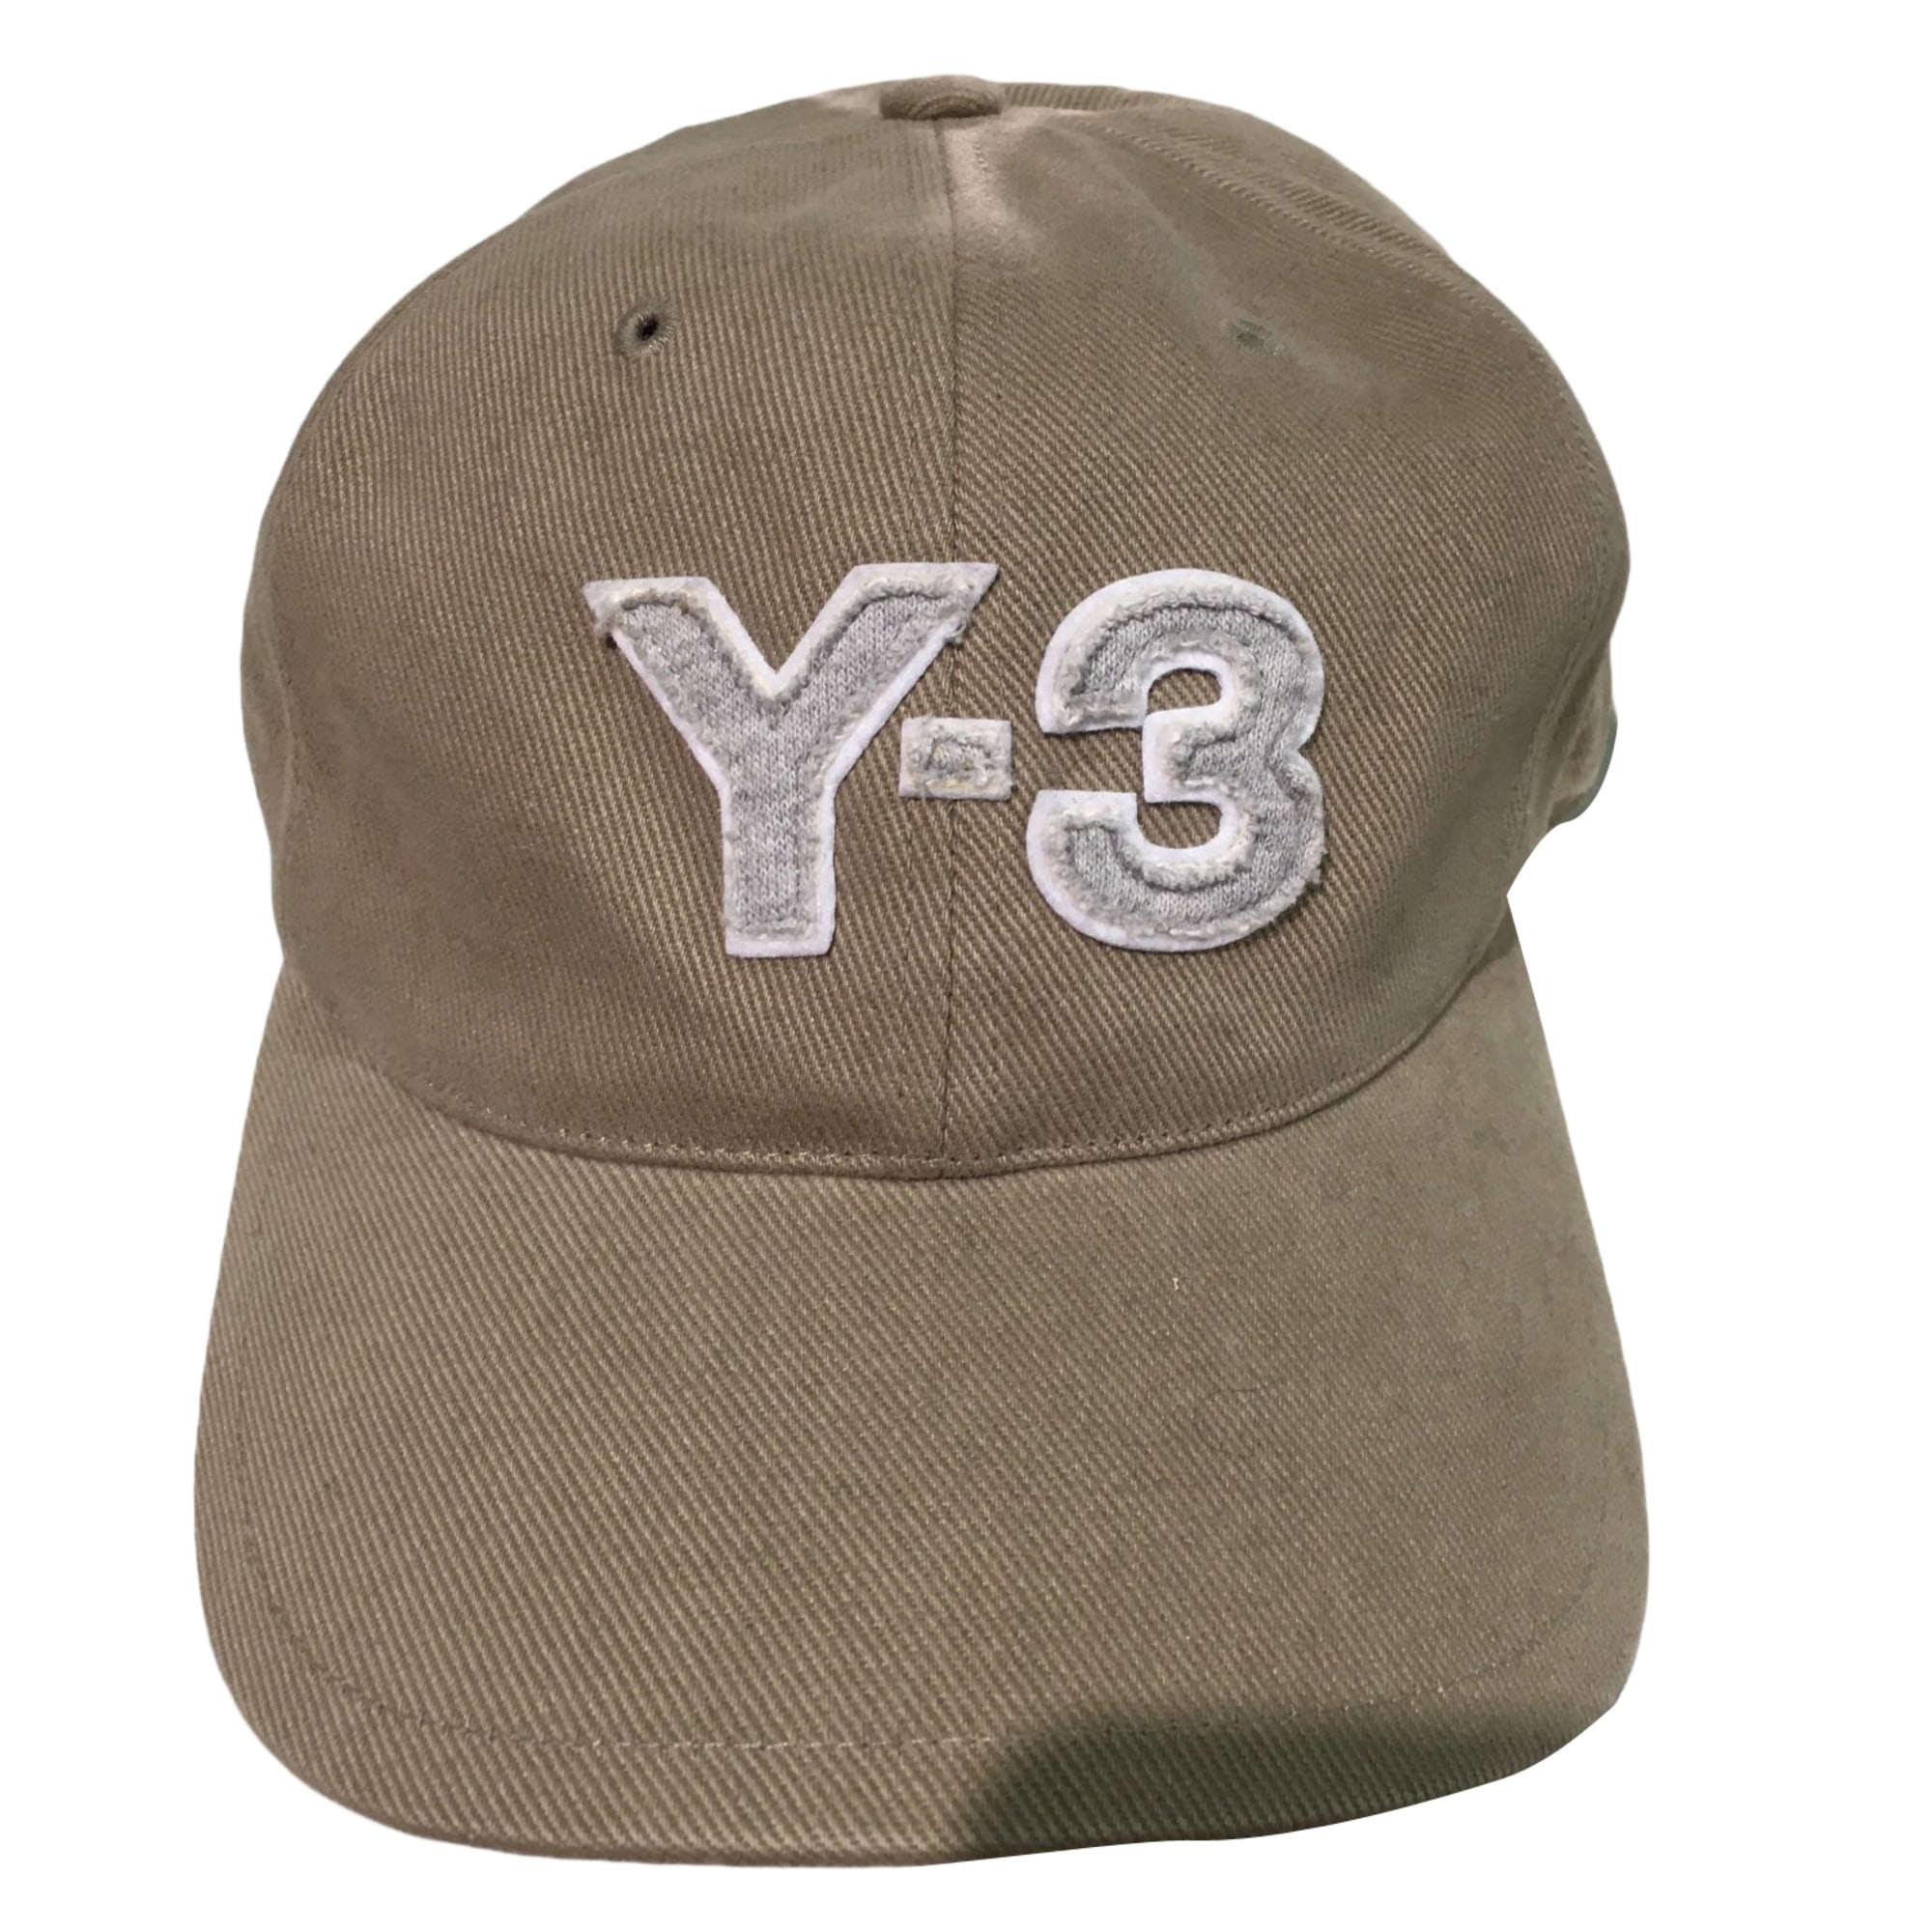 Casquette Y-3 Beige, camel